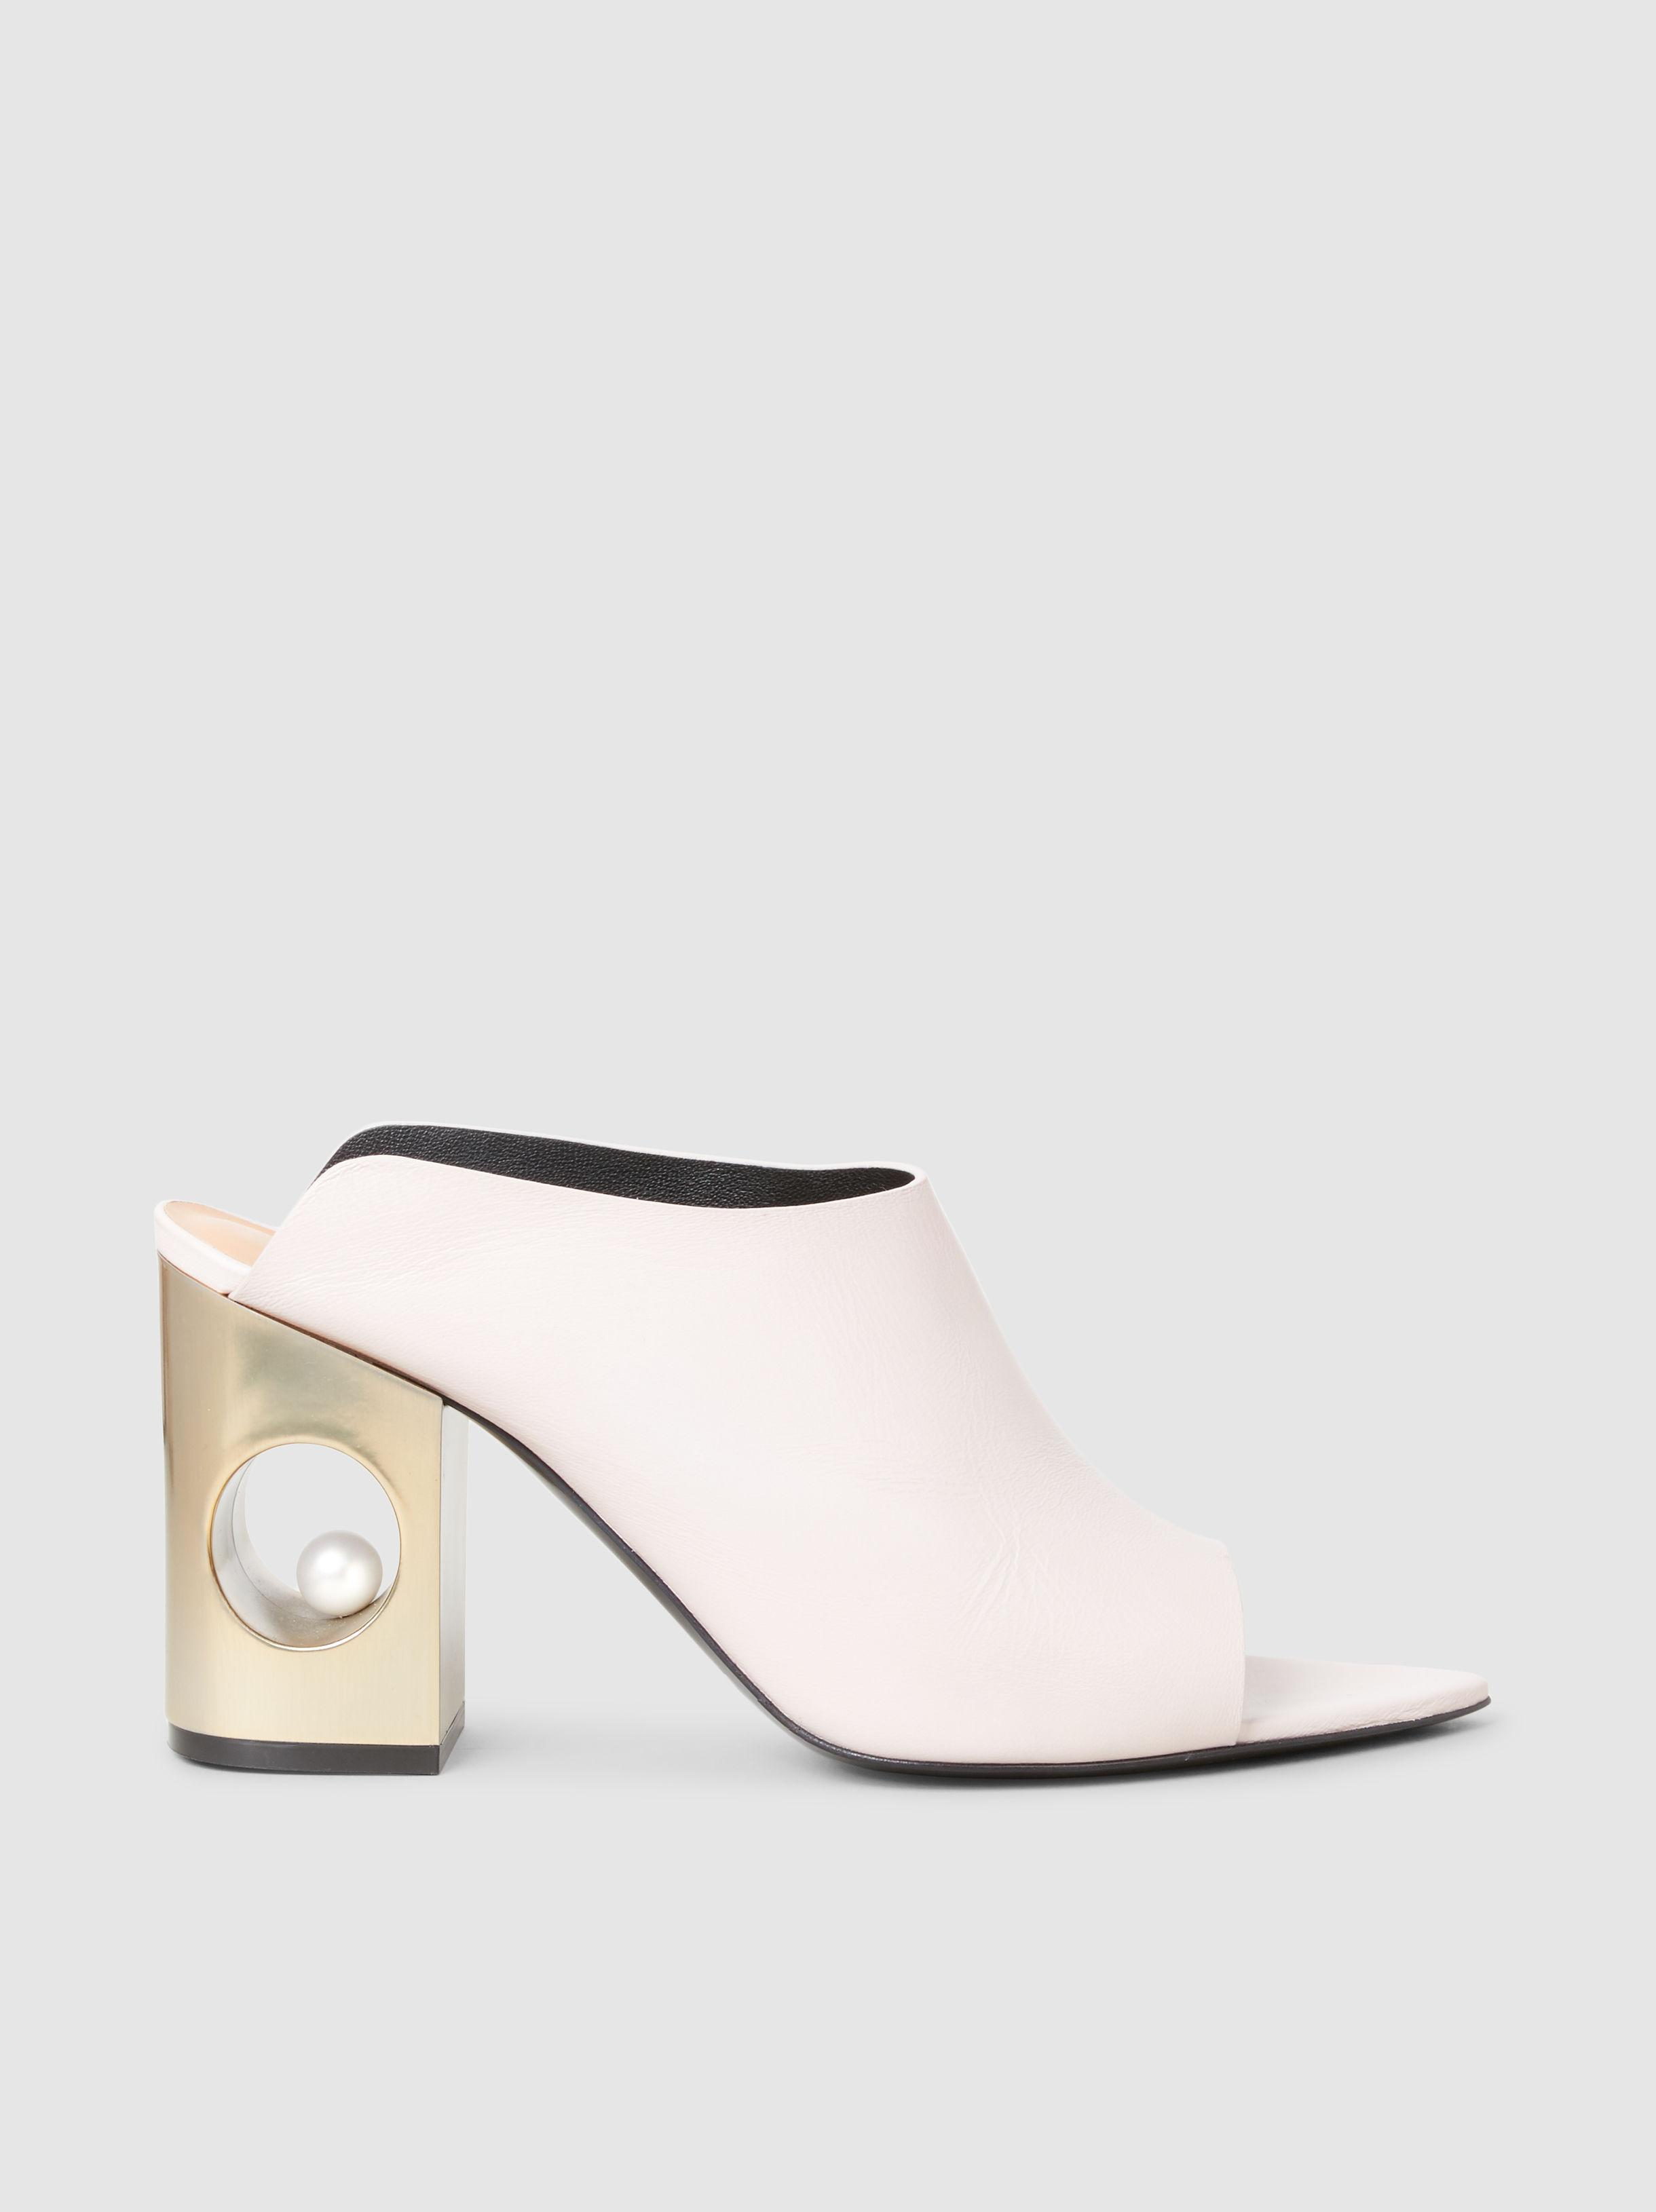 COLIAC Zack leather sandals with heels Lp4toZ